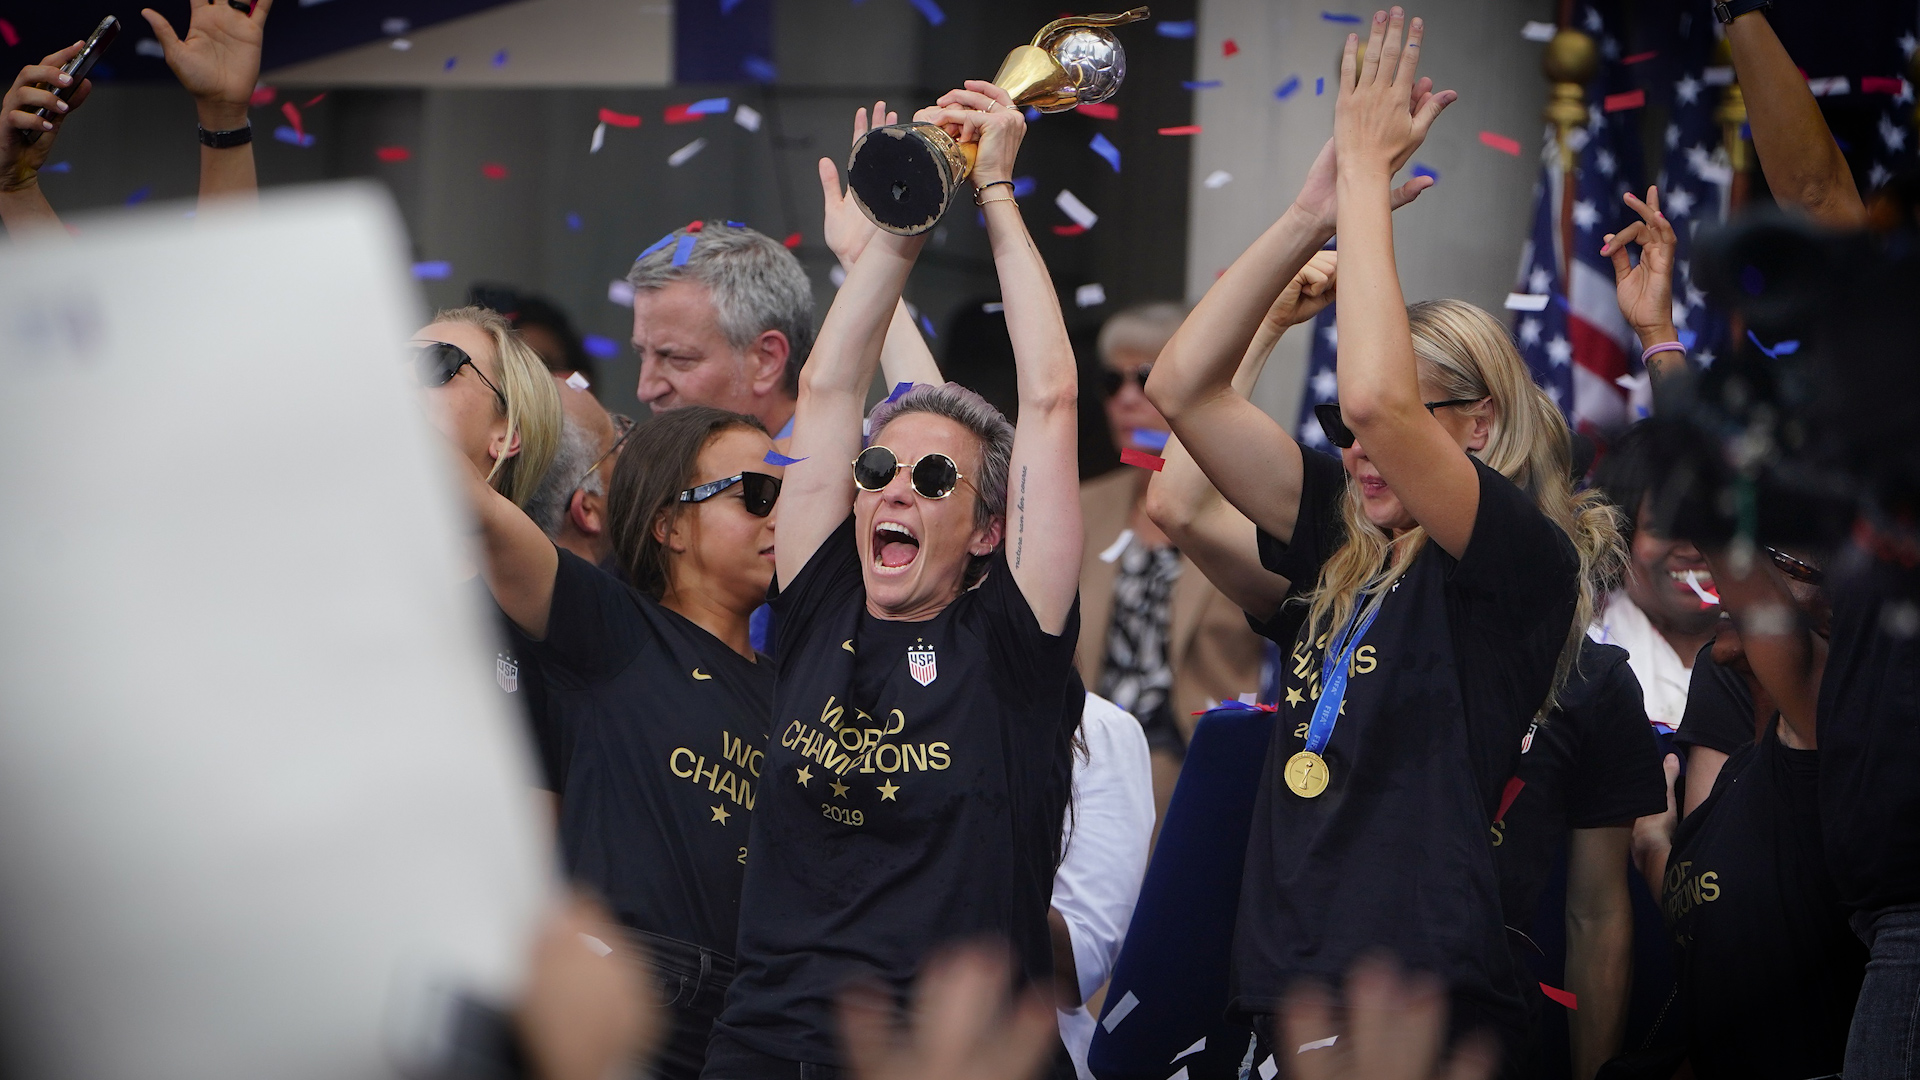 Why the debate about equal pay for U.S. women's soccer isn't that clear cut